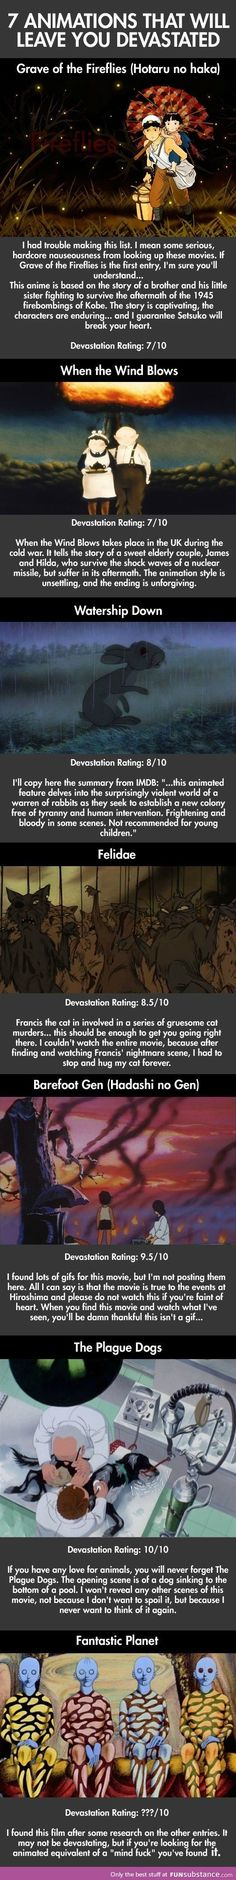 I've watched only Grave of the Fireflies and I'd never watched it again because it was so heartbreaking and this review gave it a 7/10 devastation level?! My heart can't take the feels to watch the rest of the list...